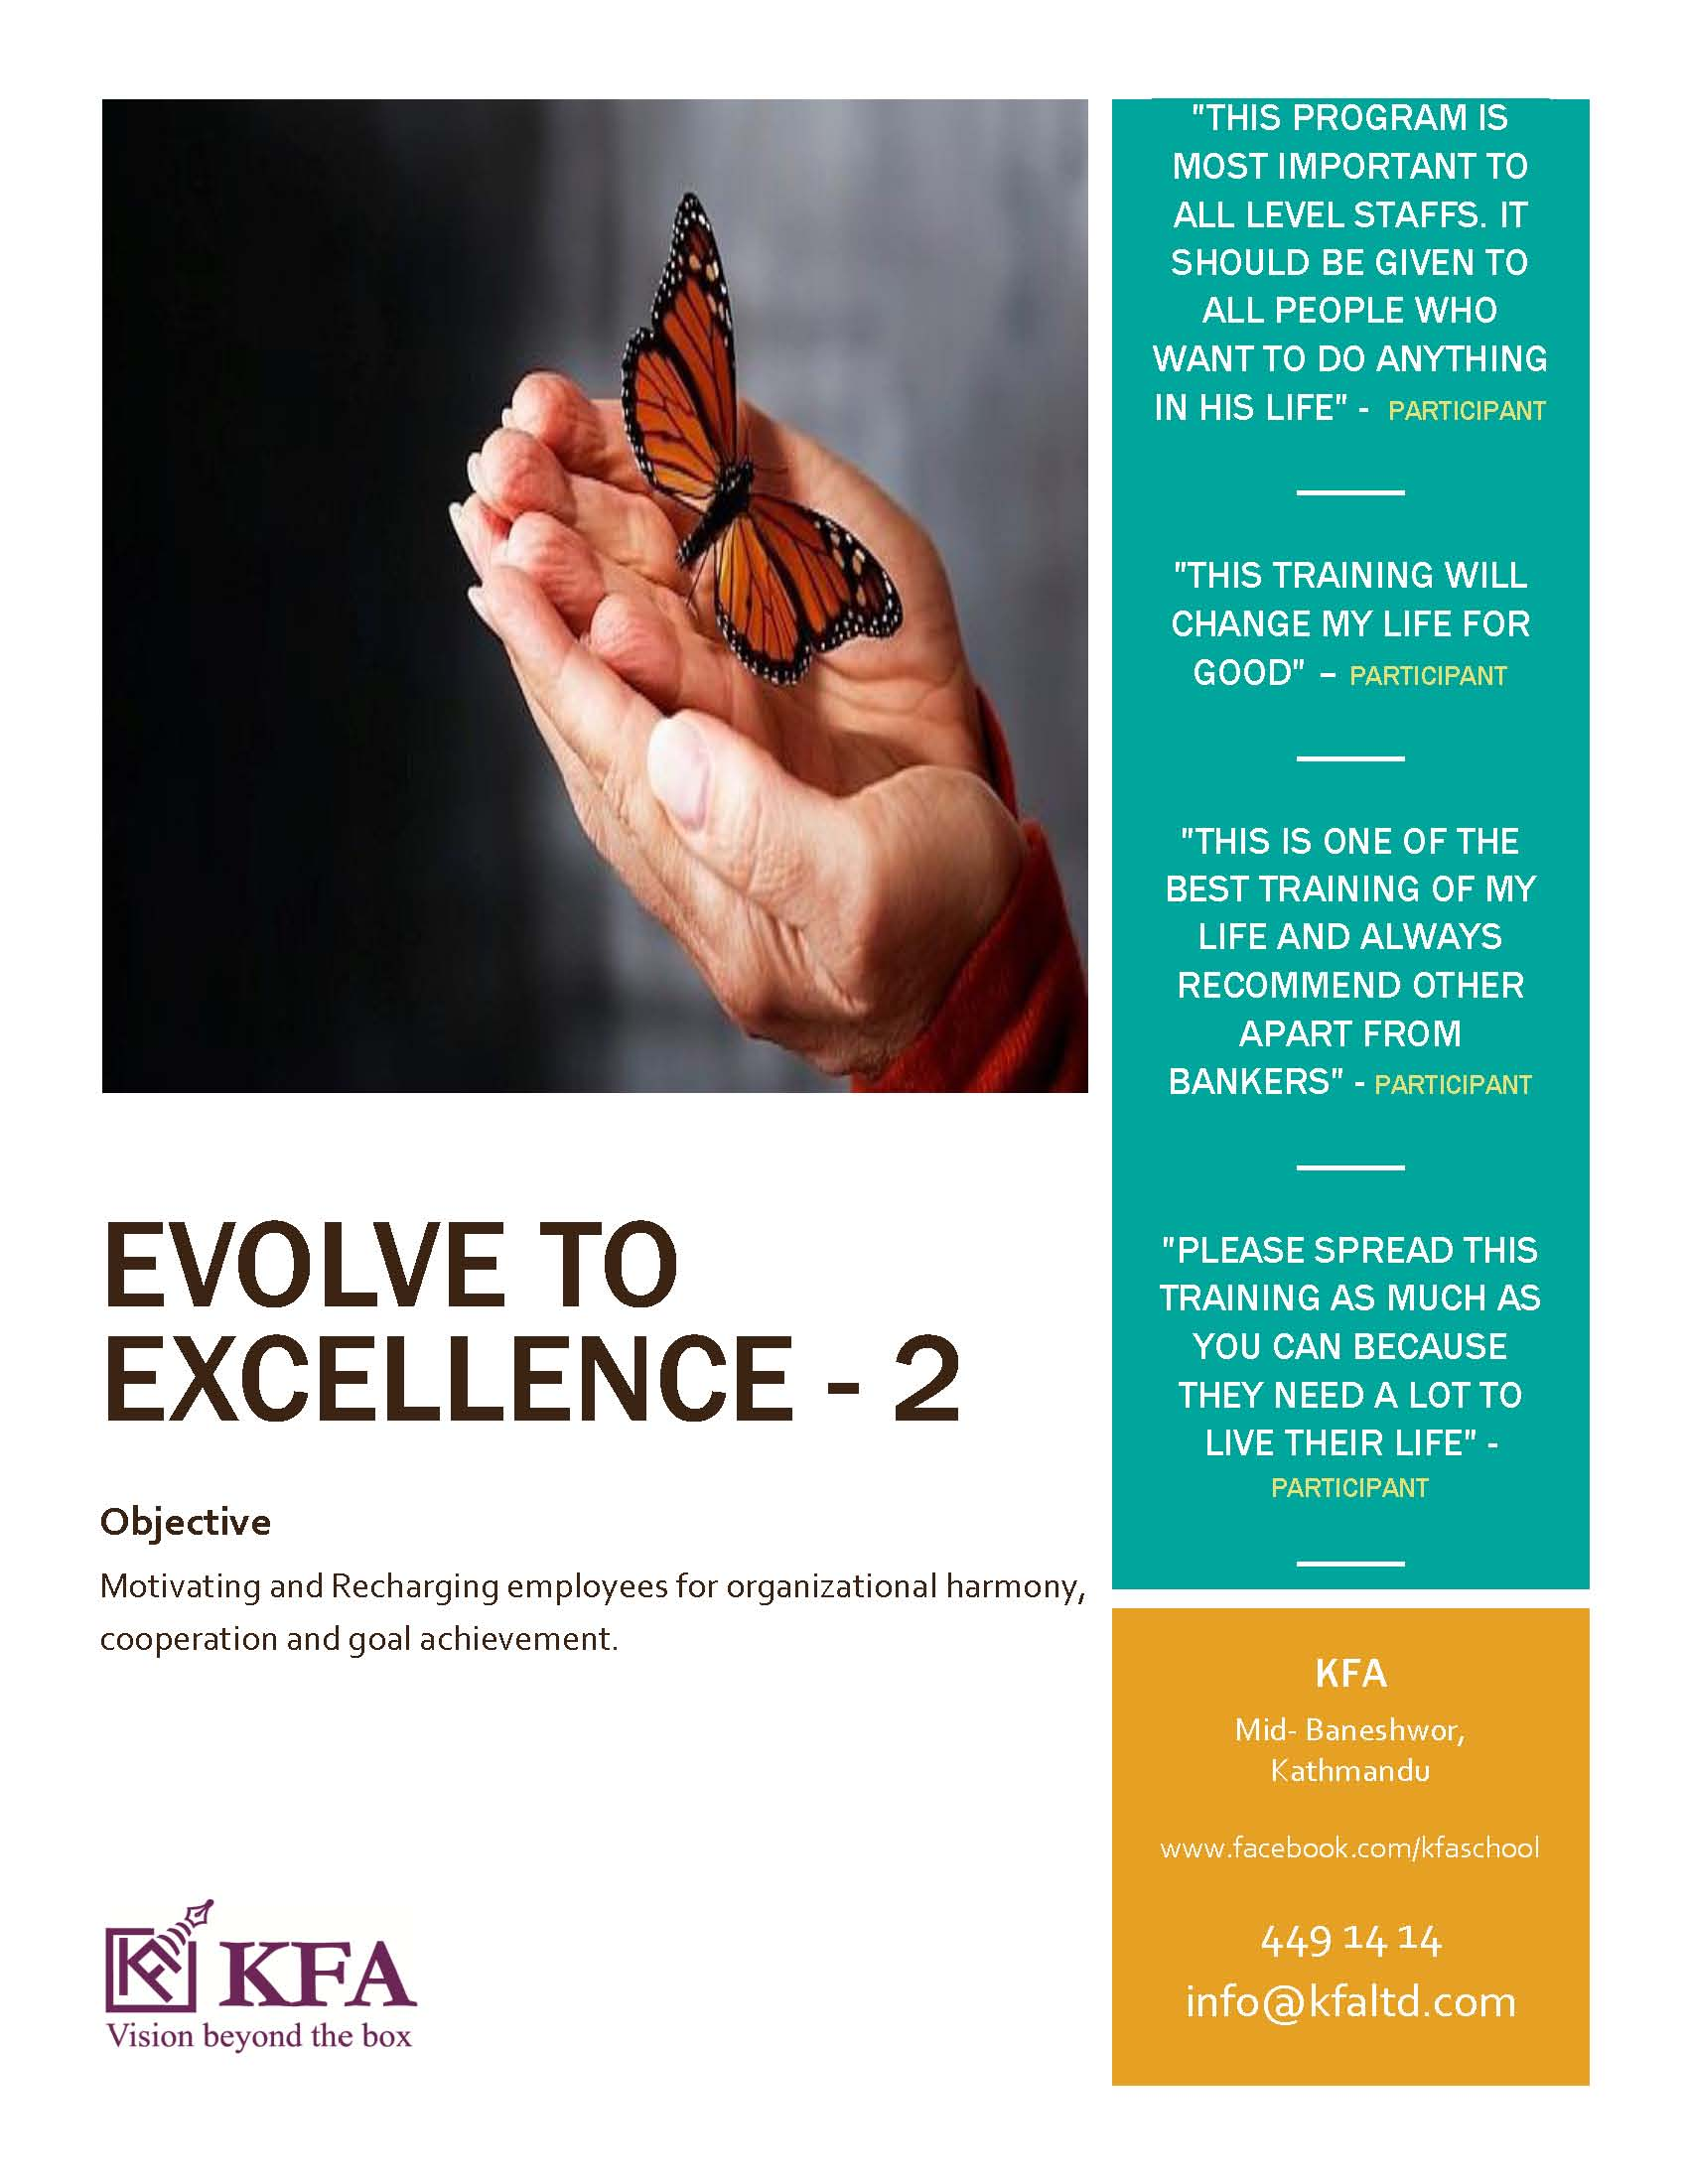 proposal-evolve-to-excellence-part-ii-revised_page_1